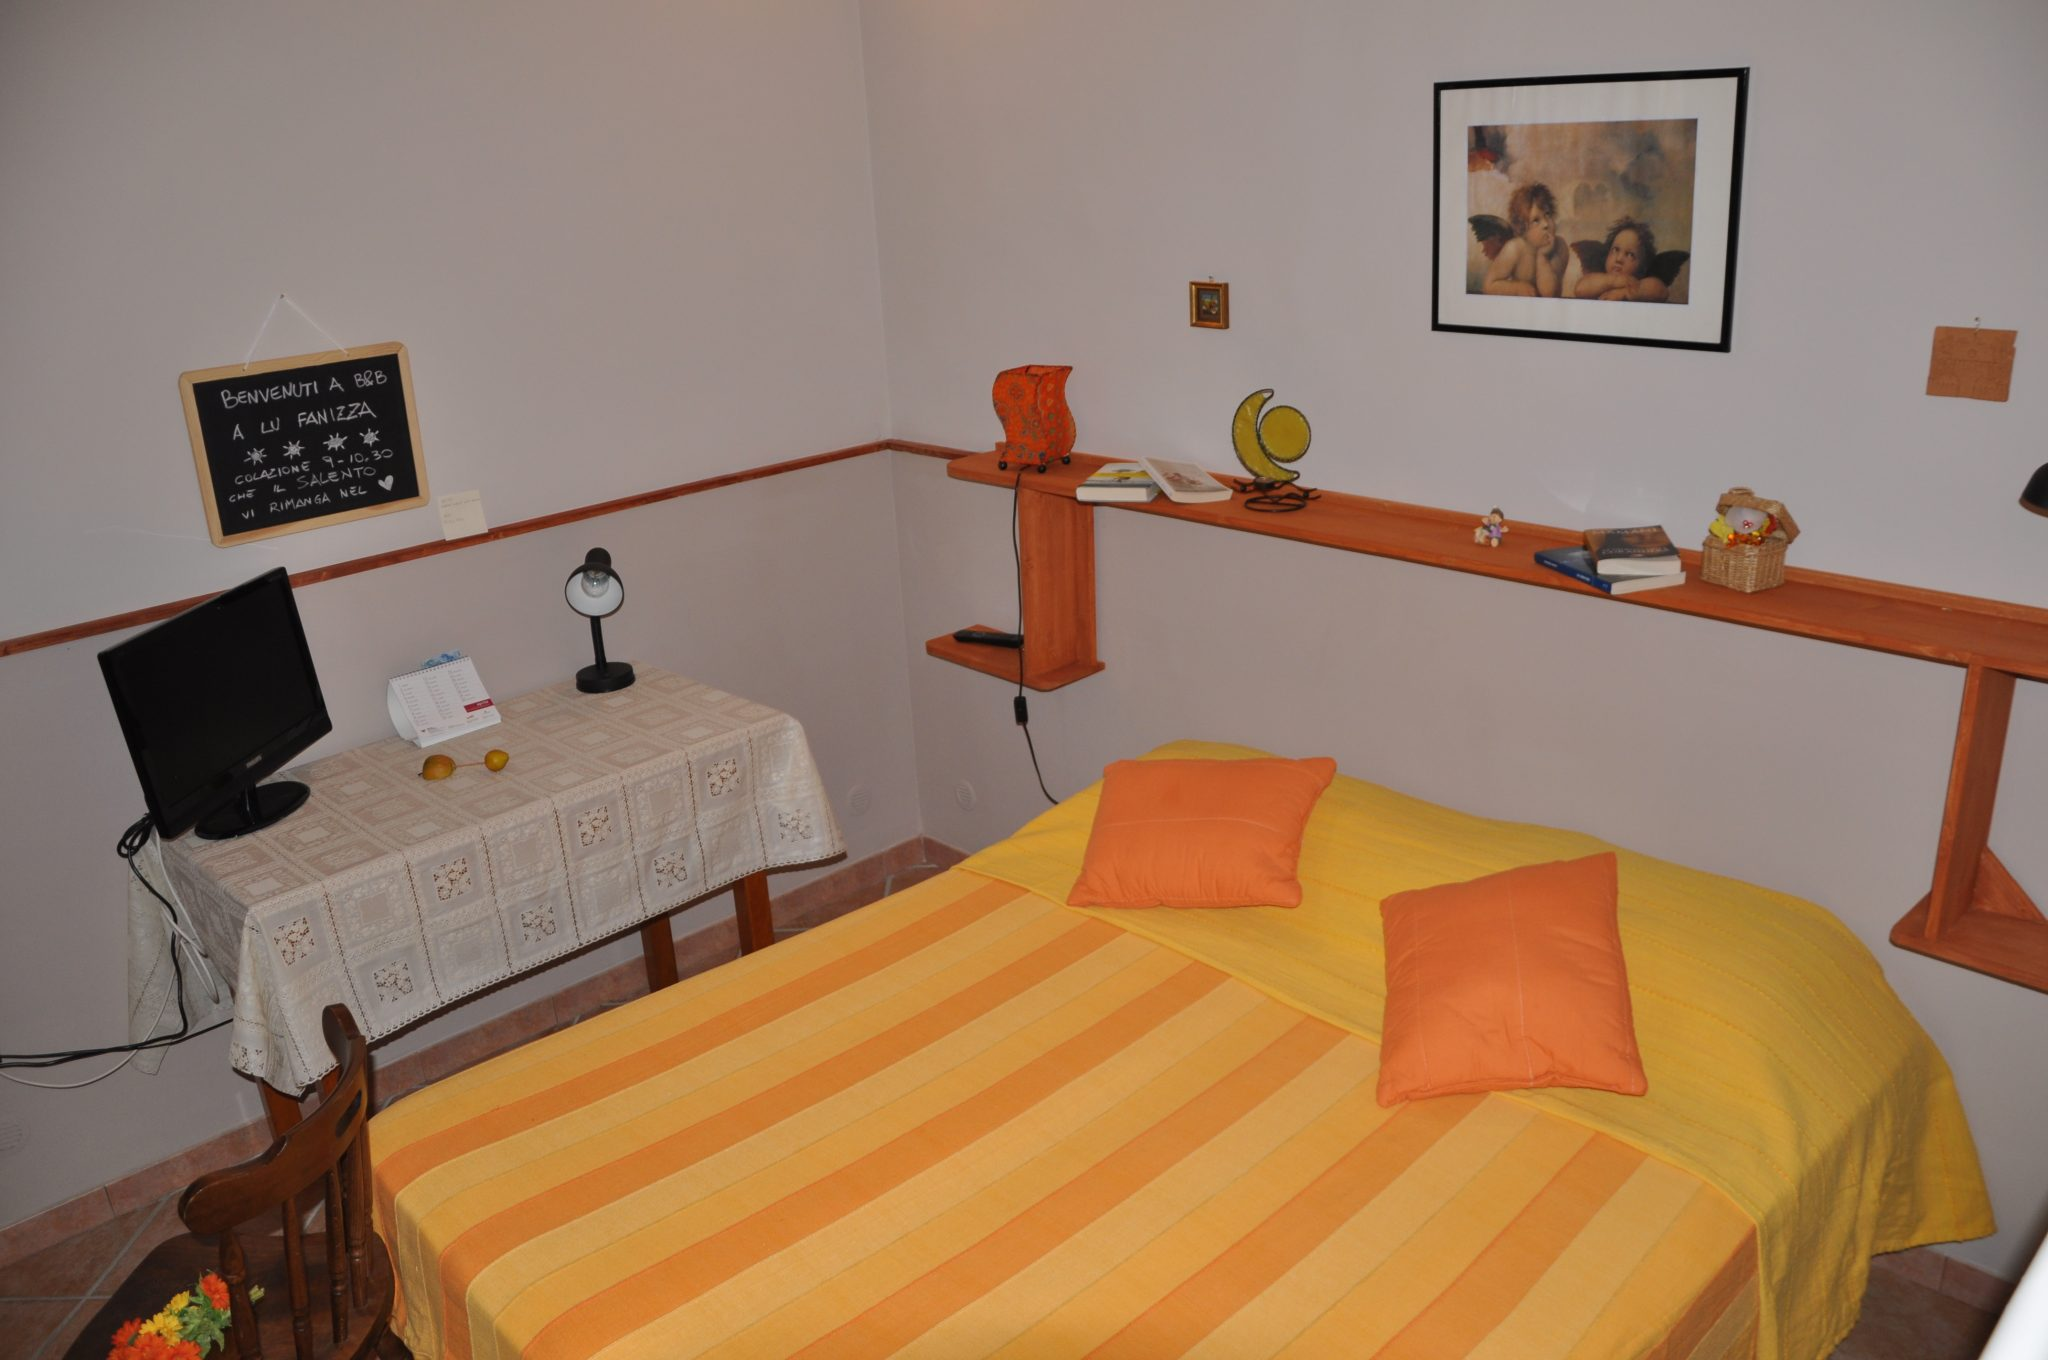 bed-a-lu-Fanizza-cutrofiano-room-of-pignate